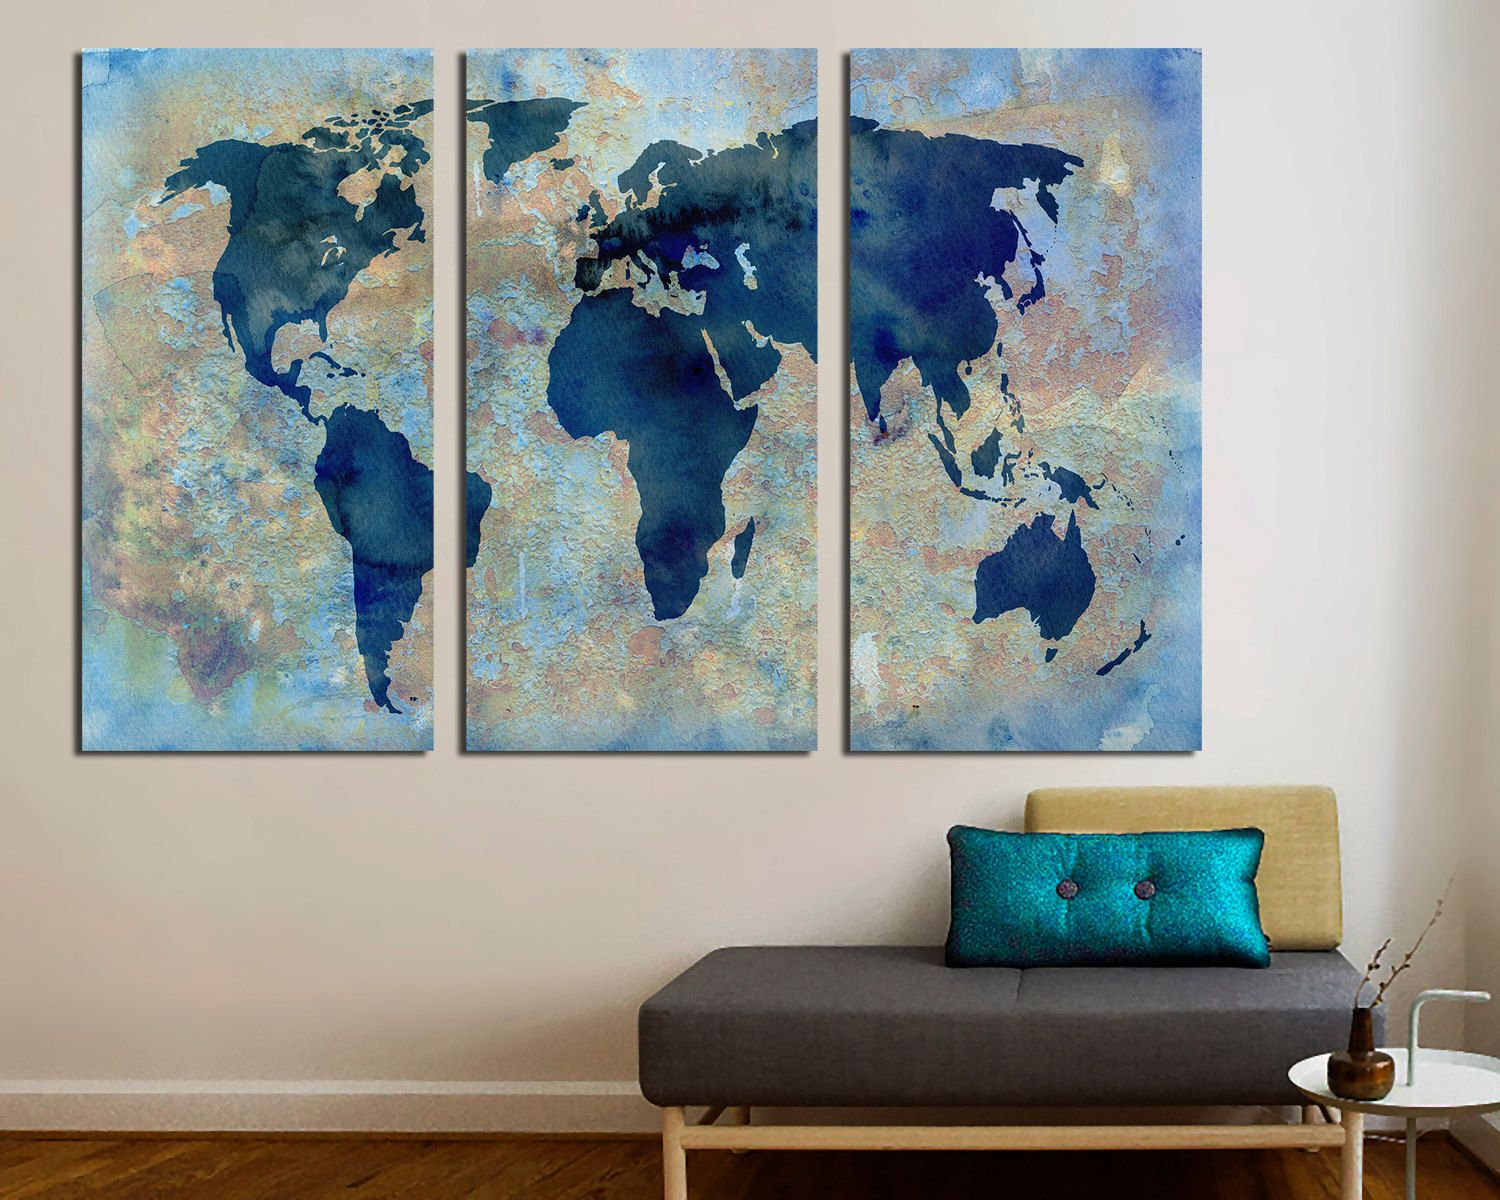 3 Panel Split Abstract World Map Canvas Deep Frames Triptych Art For Home Office Wall Decor Interior Design